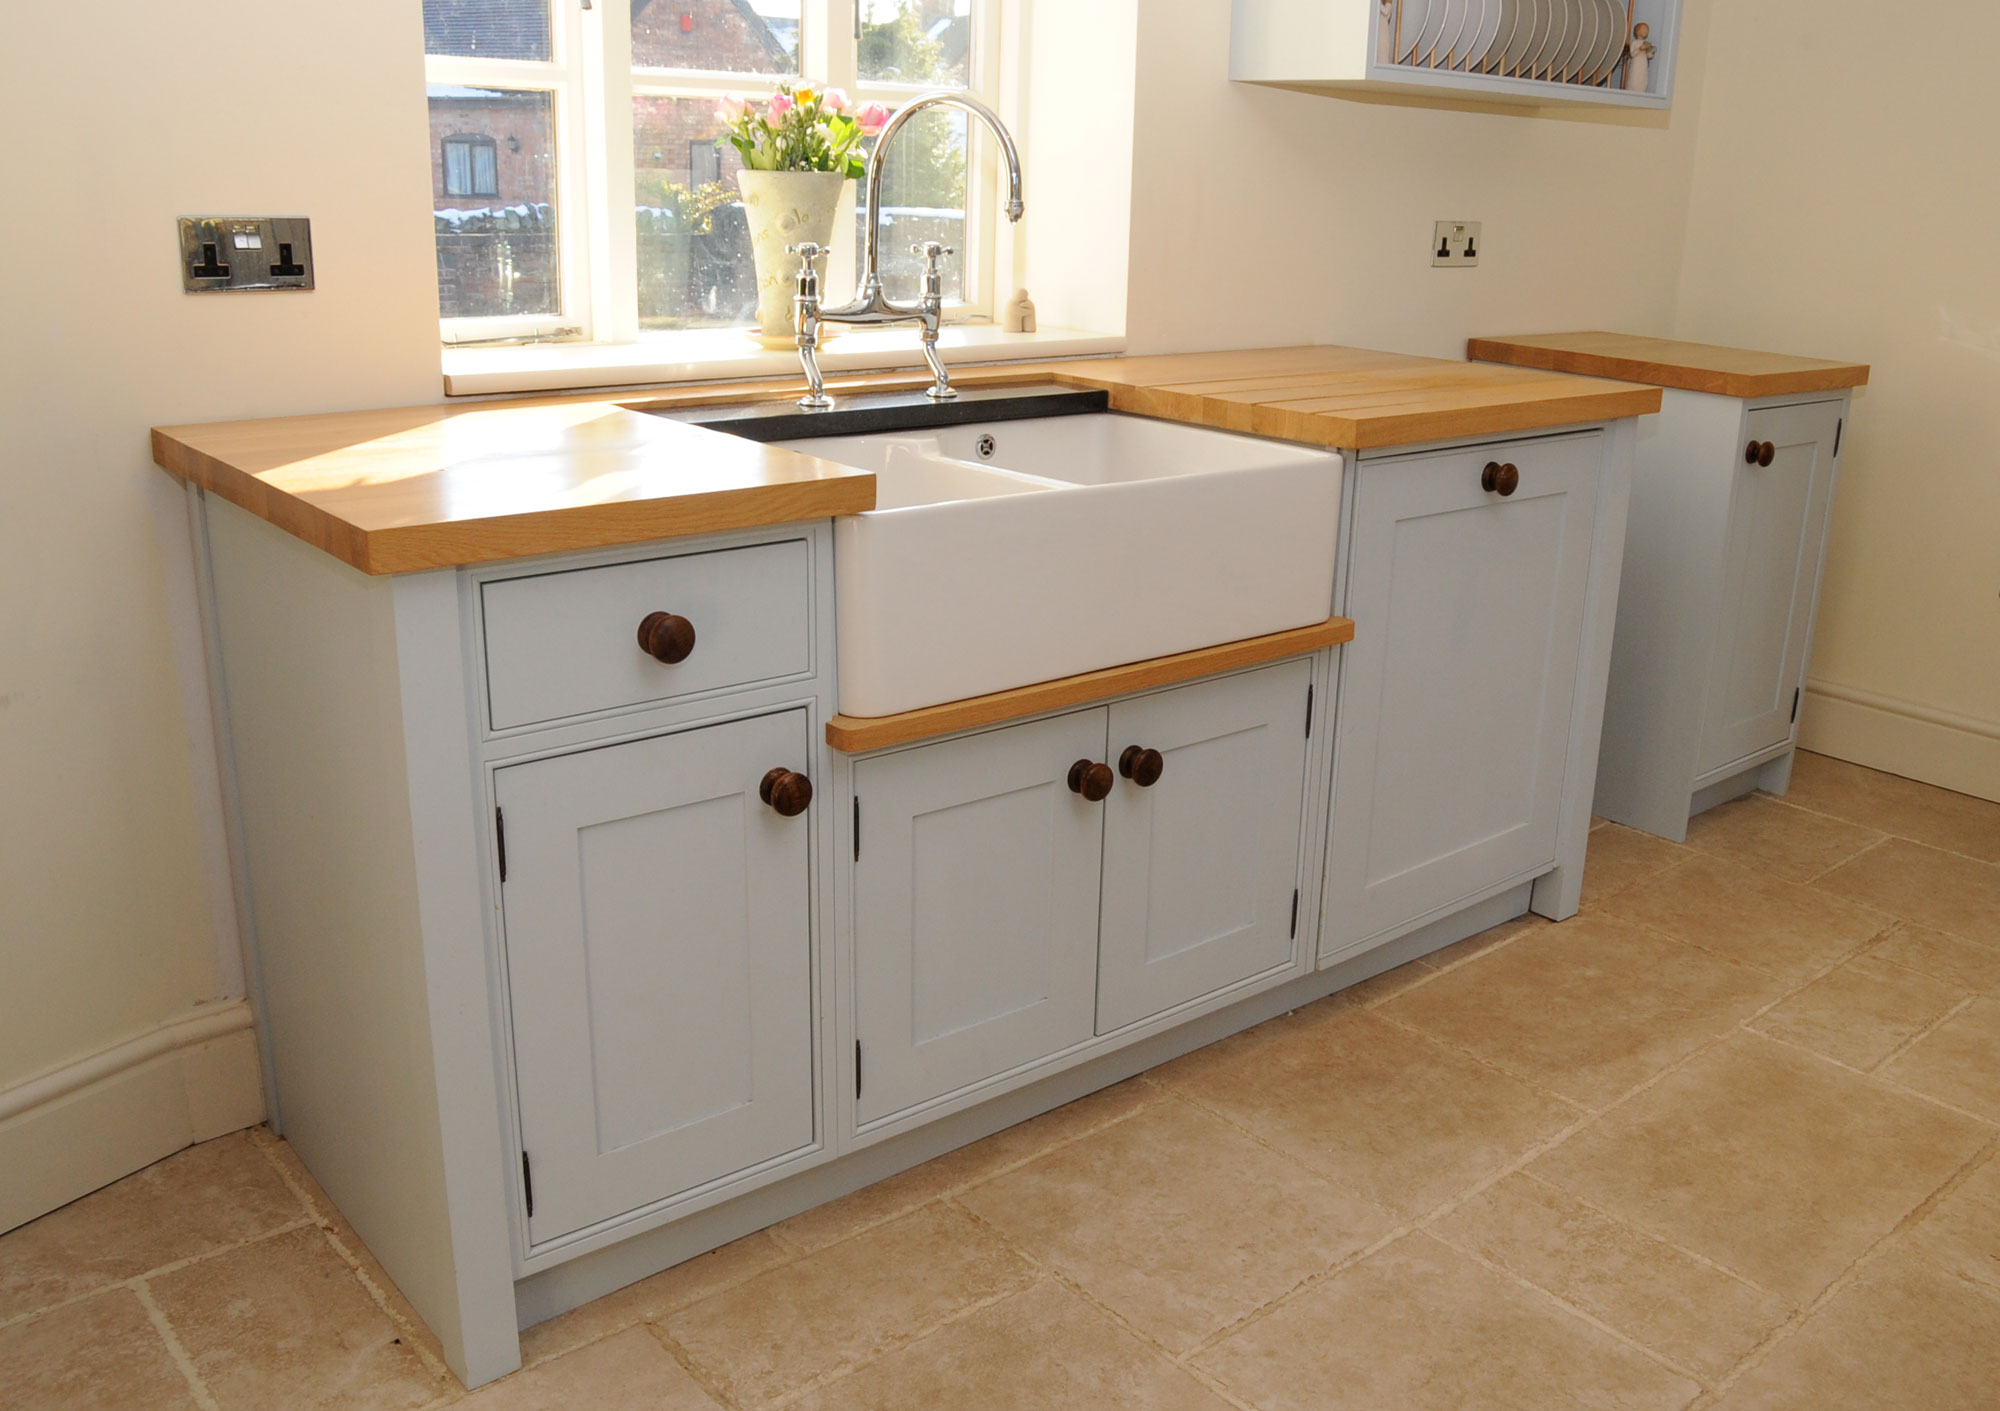 Stand alone kitchen cabinet Photo - 1